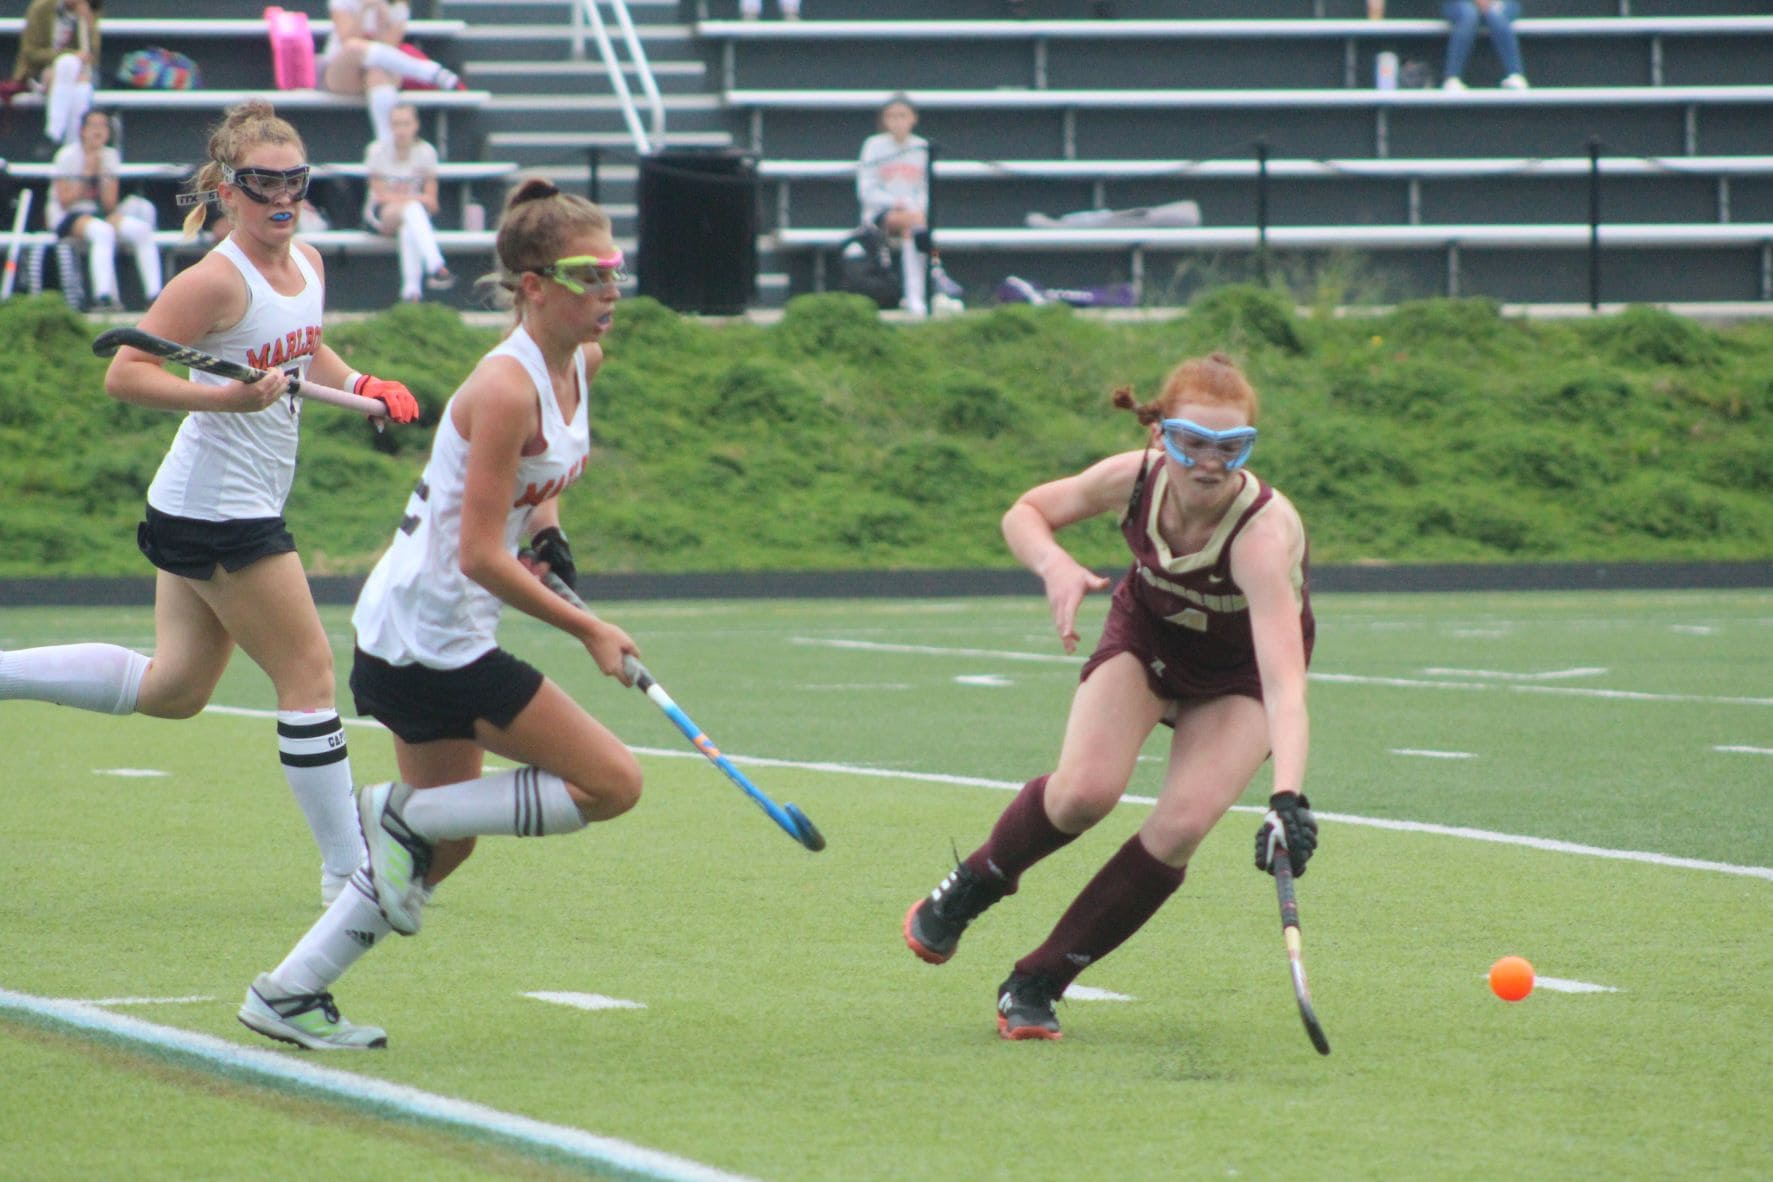 An Algonquin player lunges to gain possession of a loose ball during a recent game.